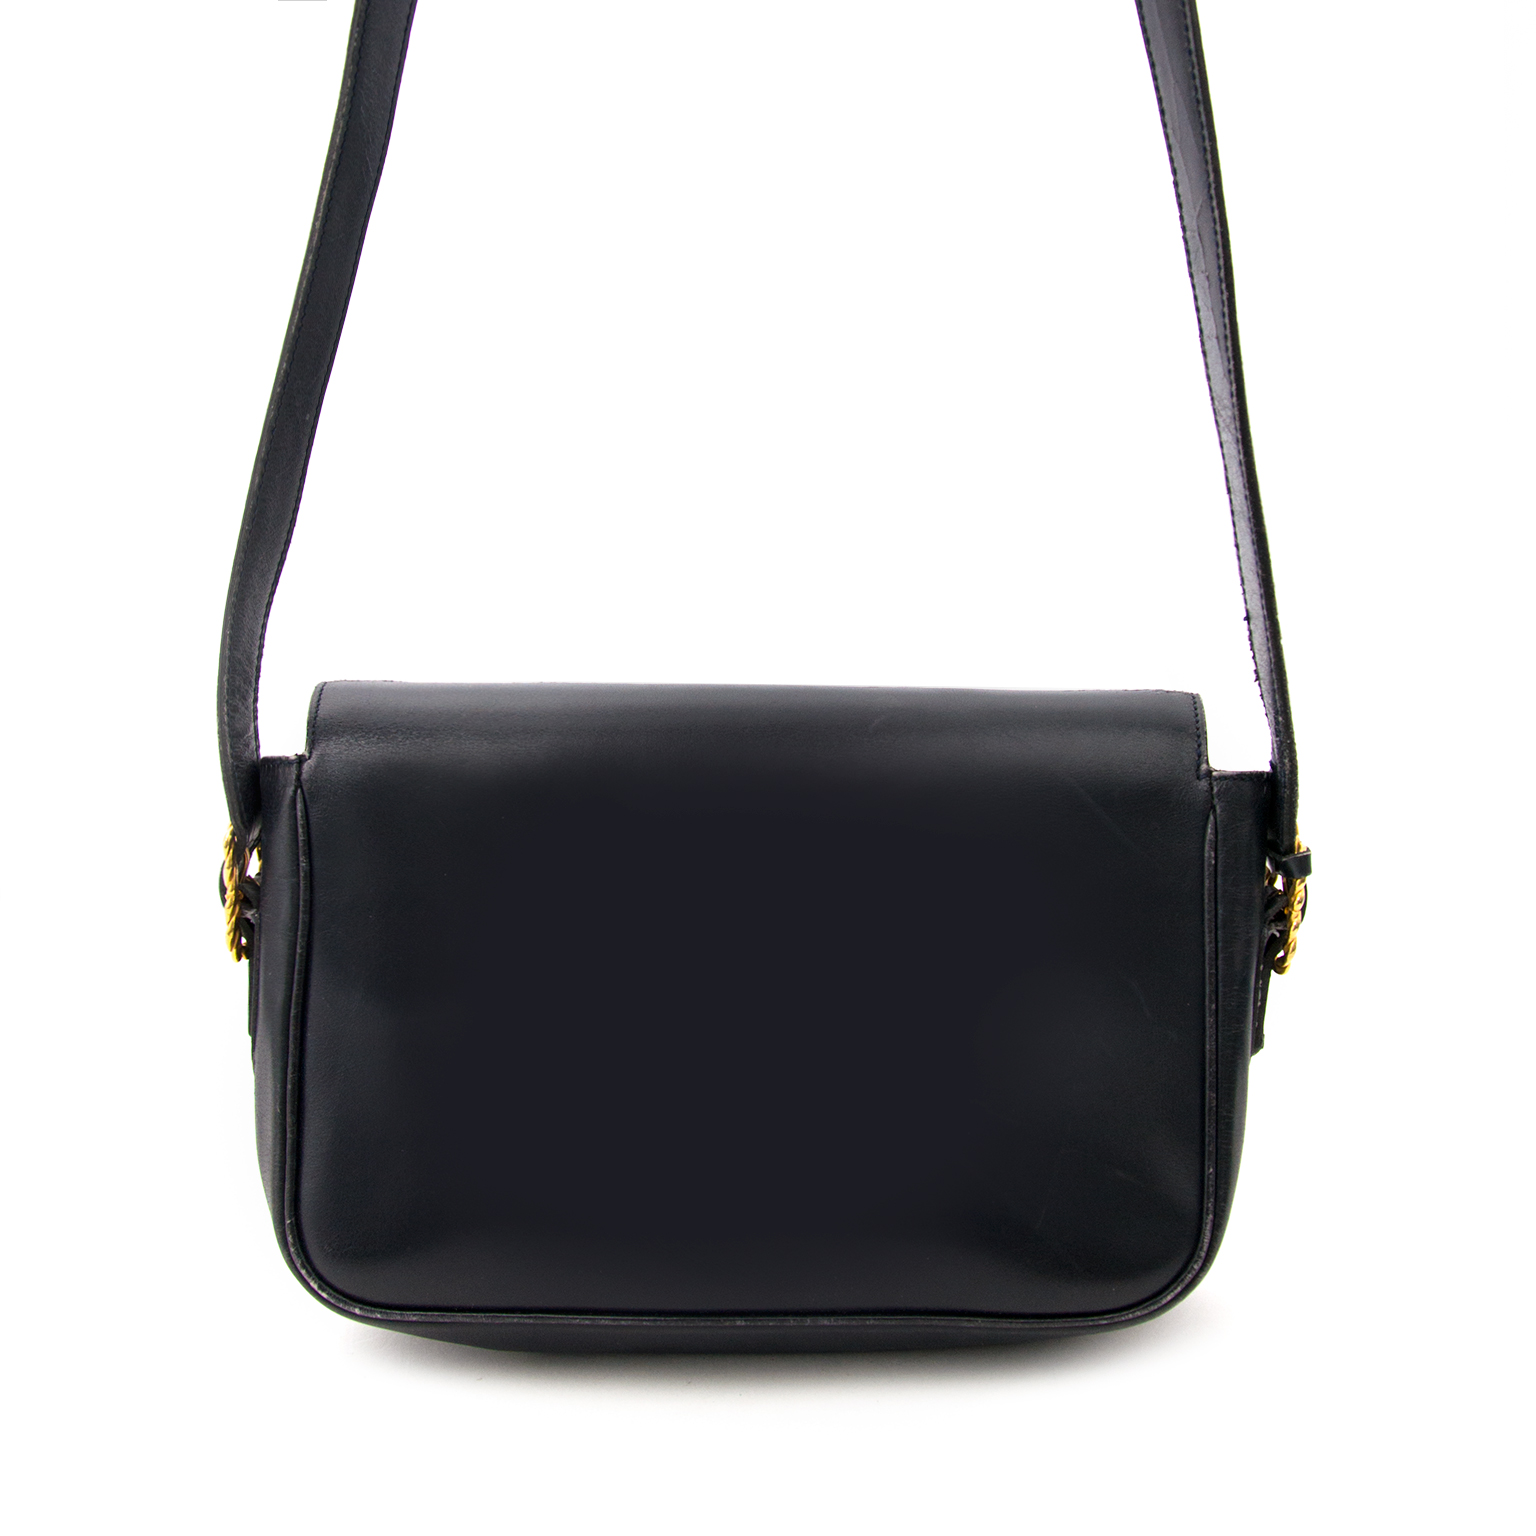 Shop authentic designer bags like Celine safe and secure online shopping at Labellov.com